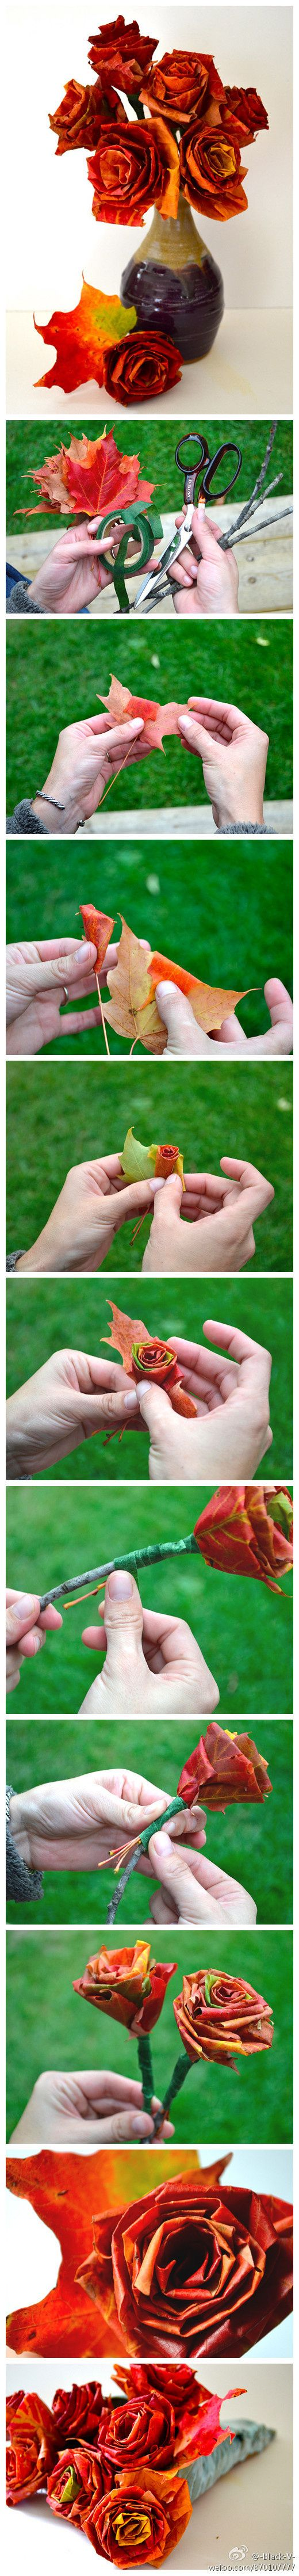 flowers from fall leaves.. would be perfect for a fall weddingCrafts Ideas, Fall Leaves, Fall Table, Diy Crafts, Autumn Leaves, Paper Flower, Fall Flower, Leaf Rose, Fall Wedding